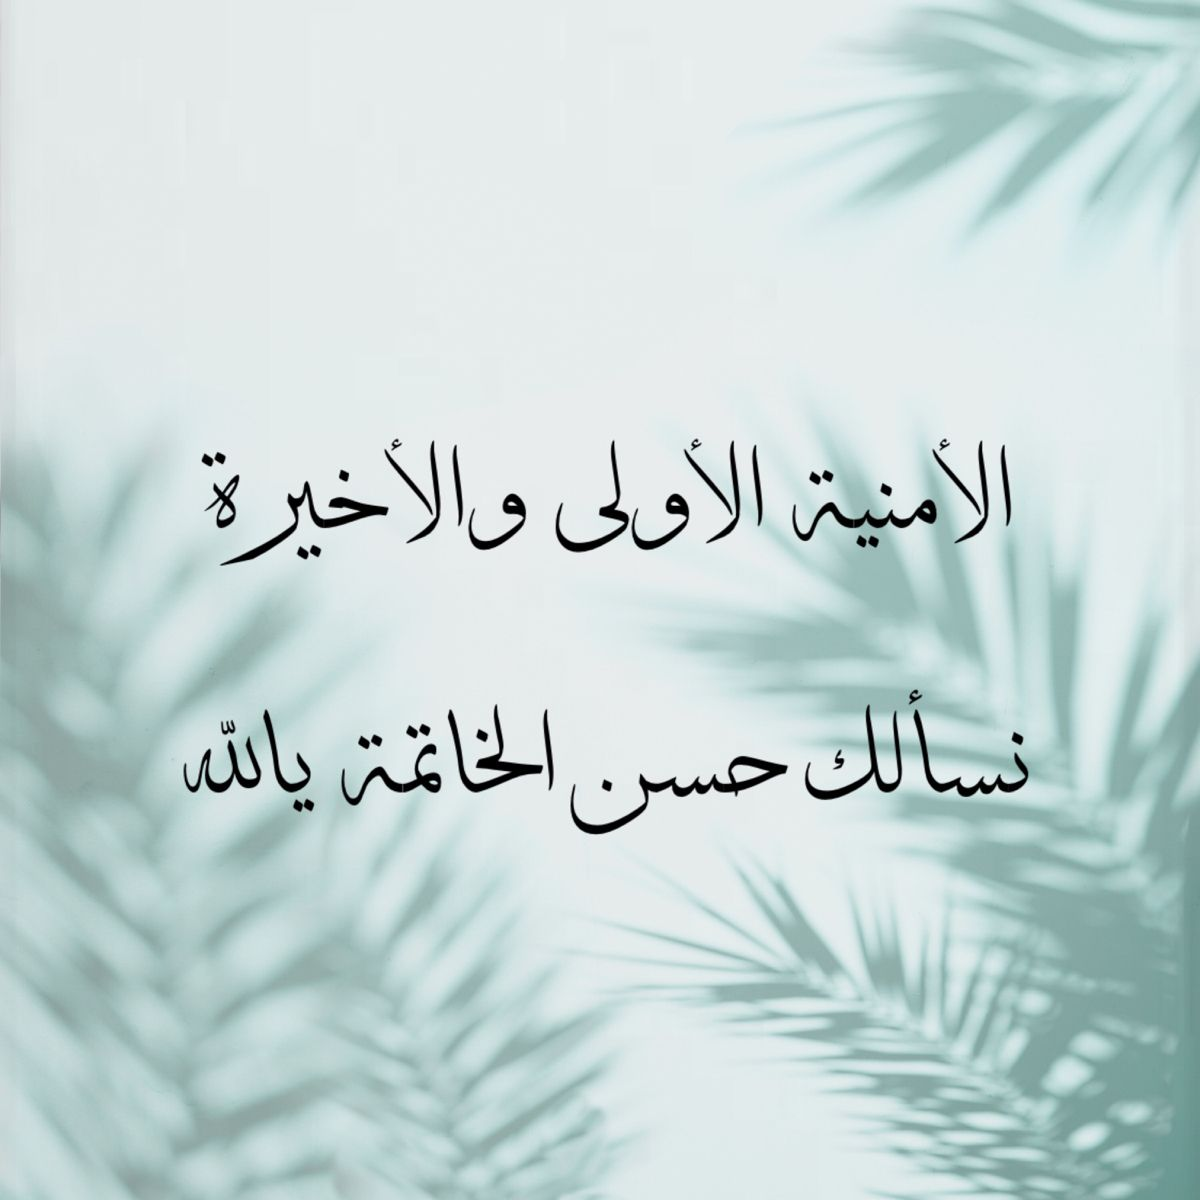 Pin By أدعية وأذكار On دعاء Islamic Quotes Quran Arabic Quotes Islamic Quotes